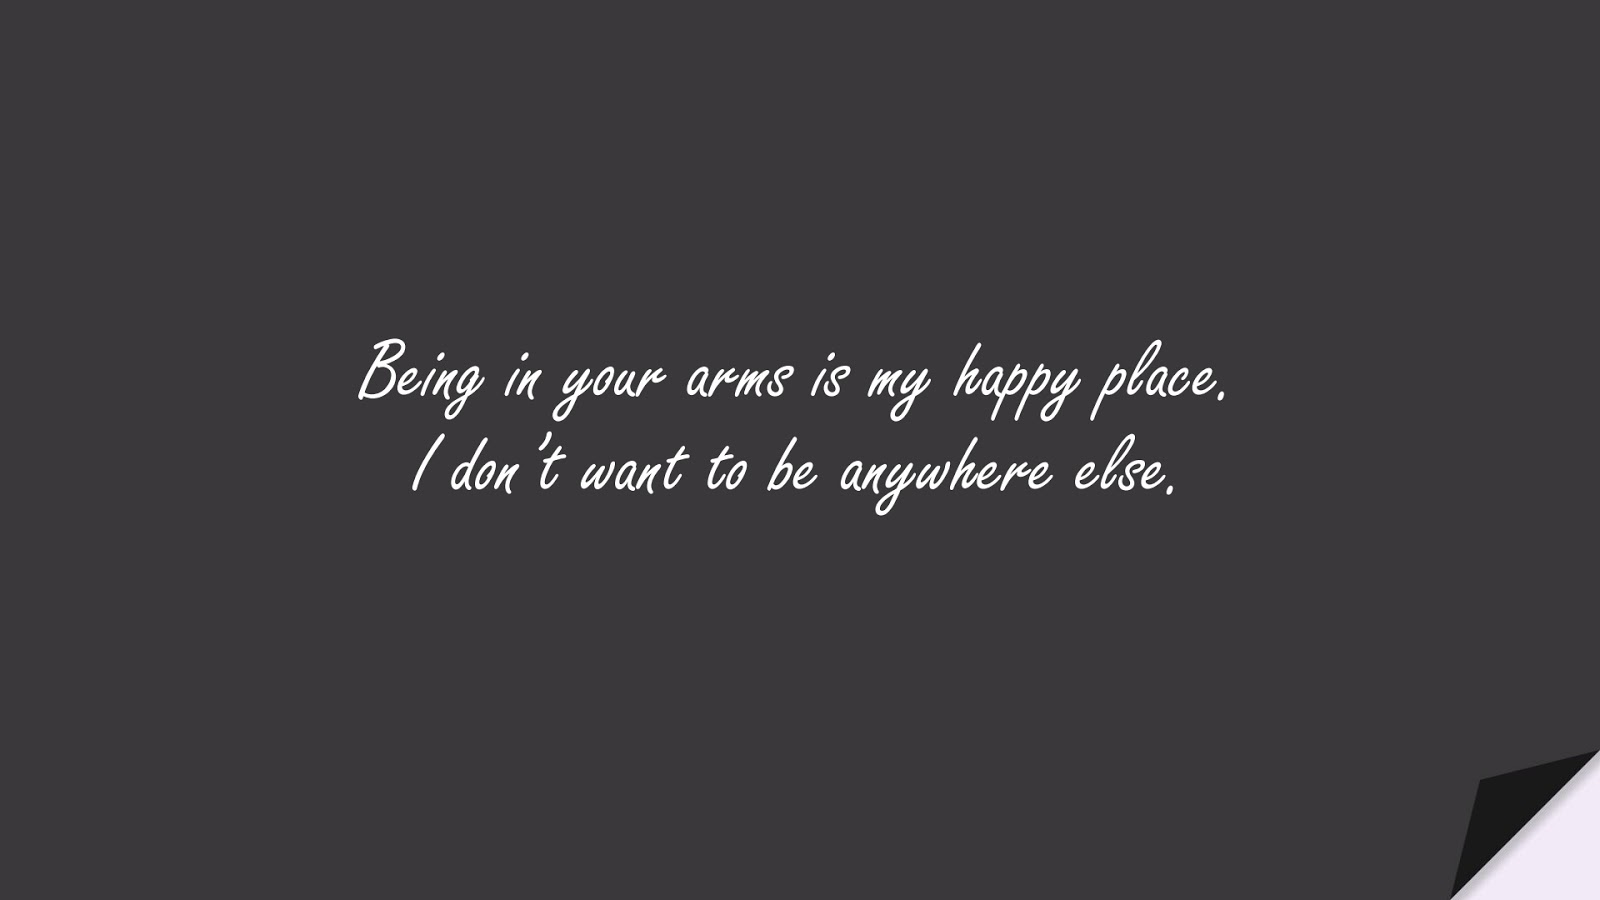 Being in your arms is my happy place. I don't want to be anywhere else.FALSE